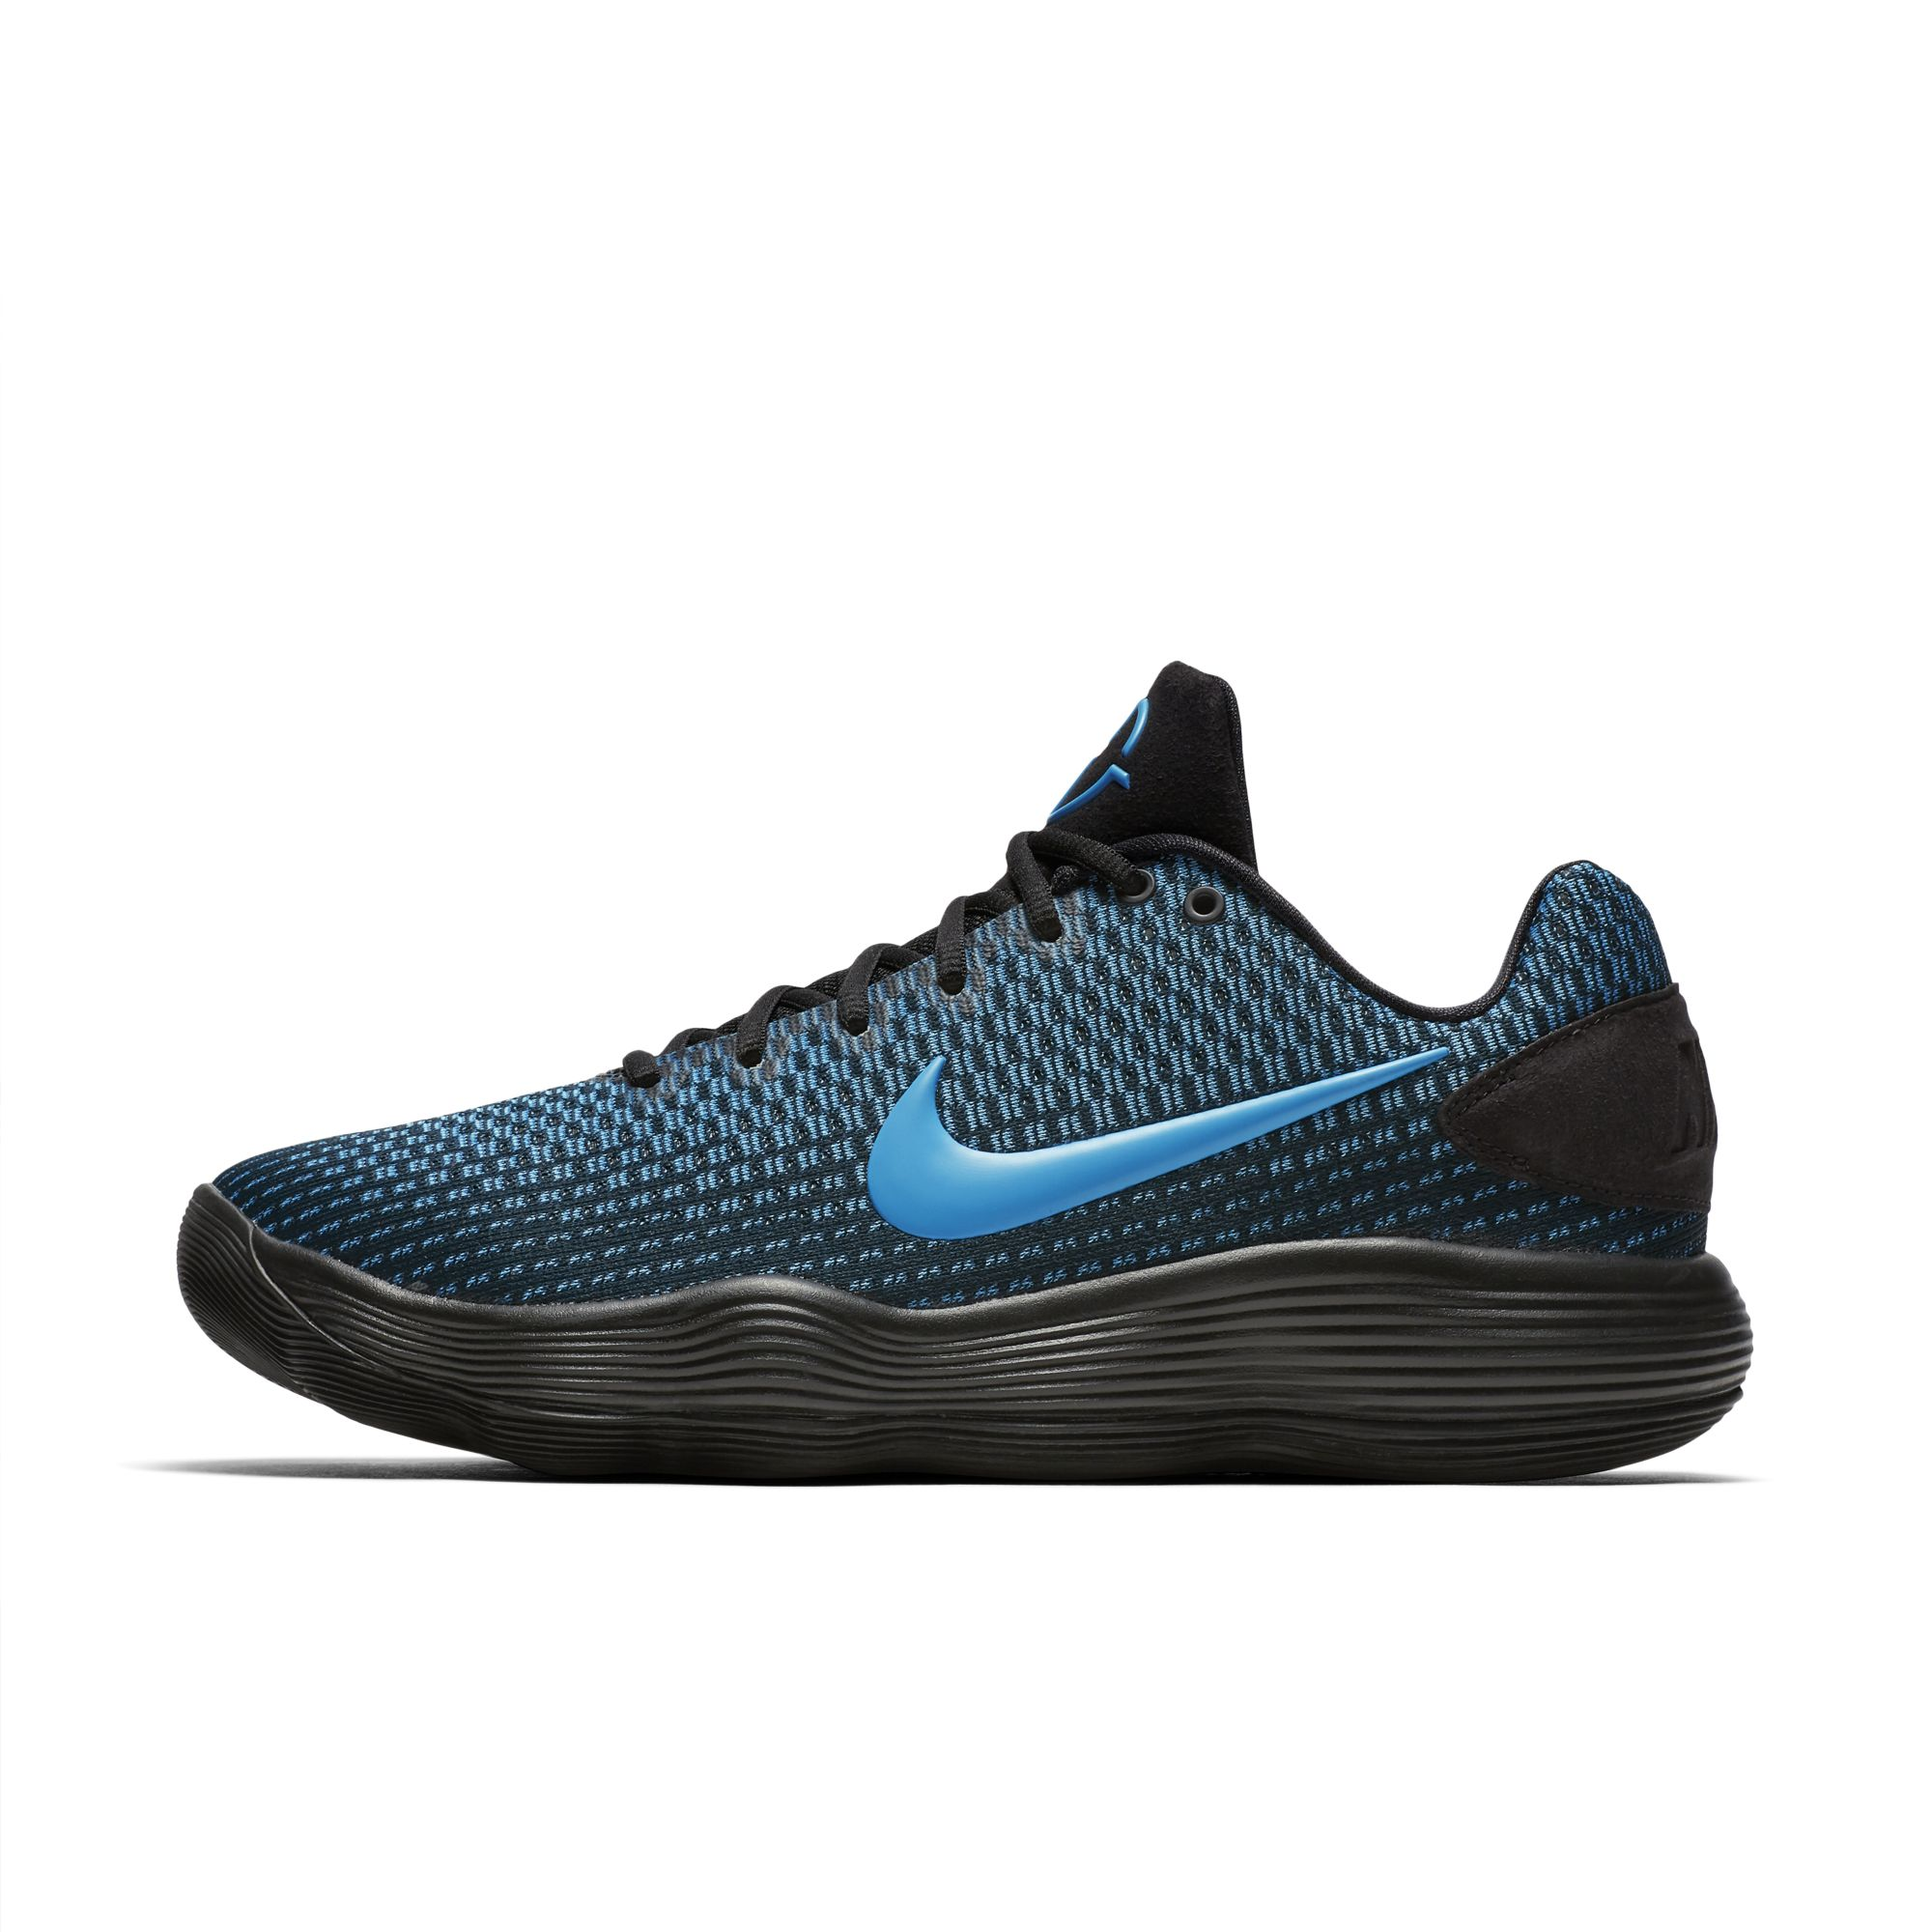 blue black mens nike hyperdunk 2017 shoes